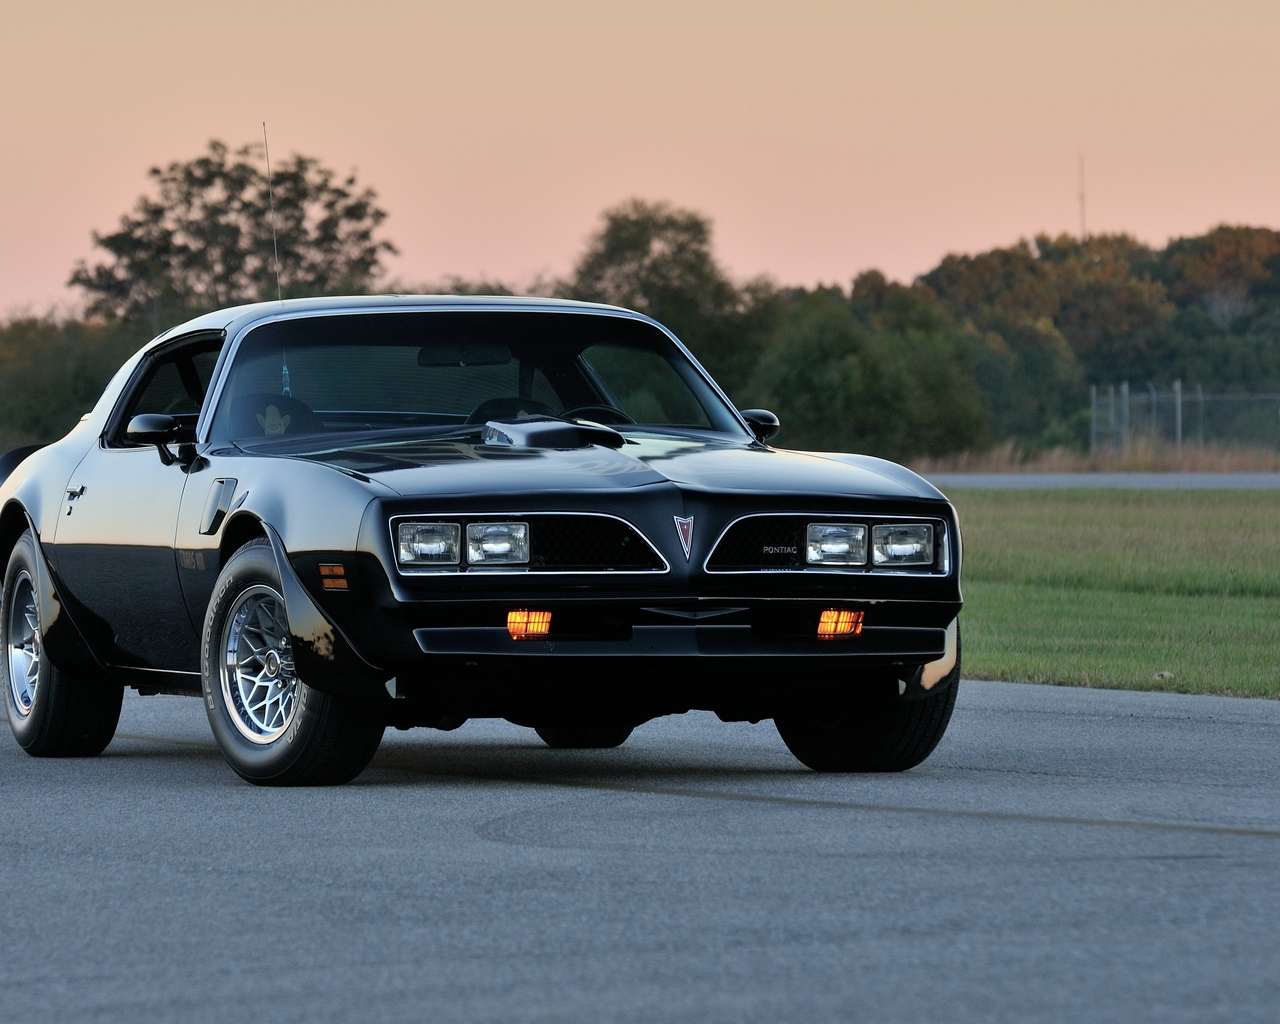 Download wallpaper 1280x1024 pontiac firebird trans am ws6 1280x1024